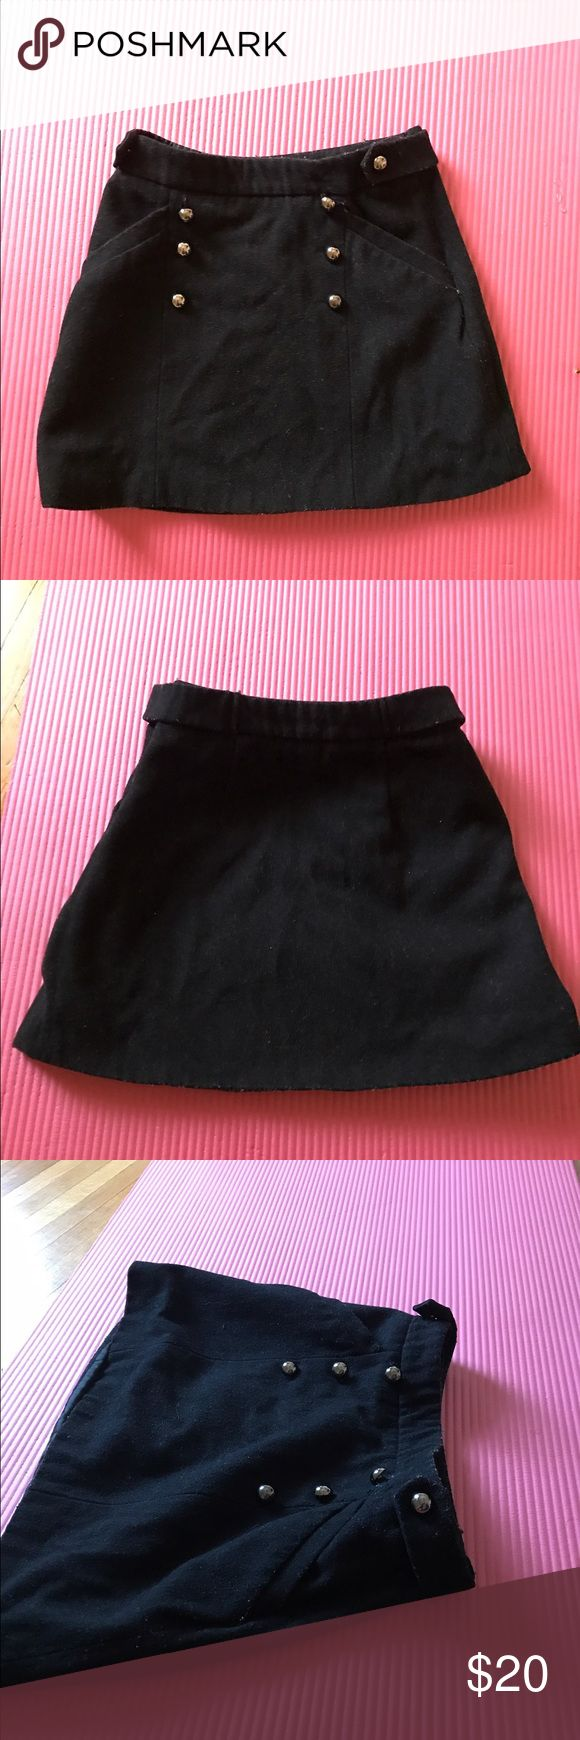 Topshop military skirt Sz Us 0. Uk 4. Buttons in front and two real pockets. Topshop PETITE Skirts Mini